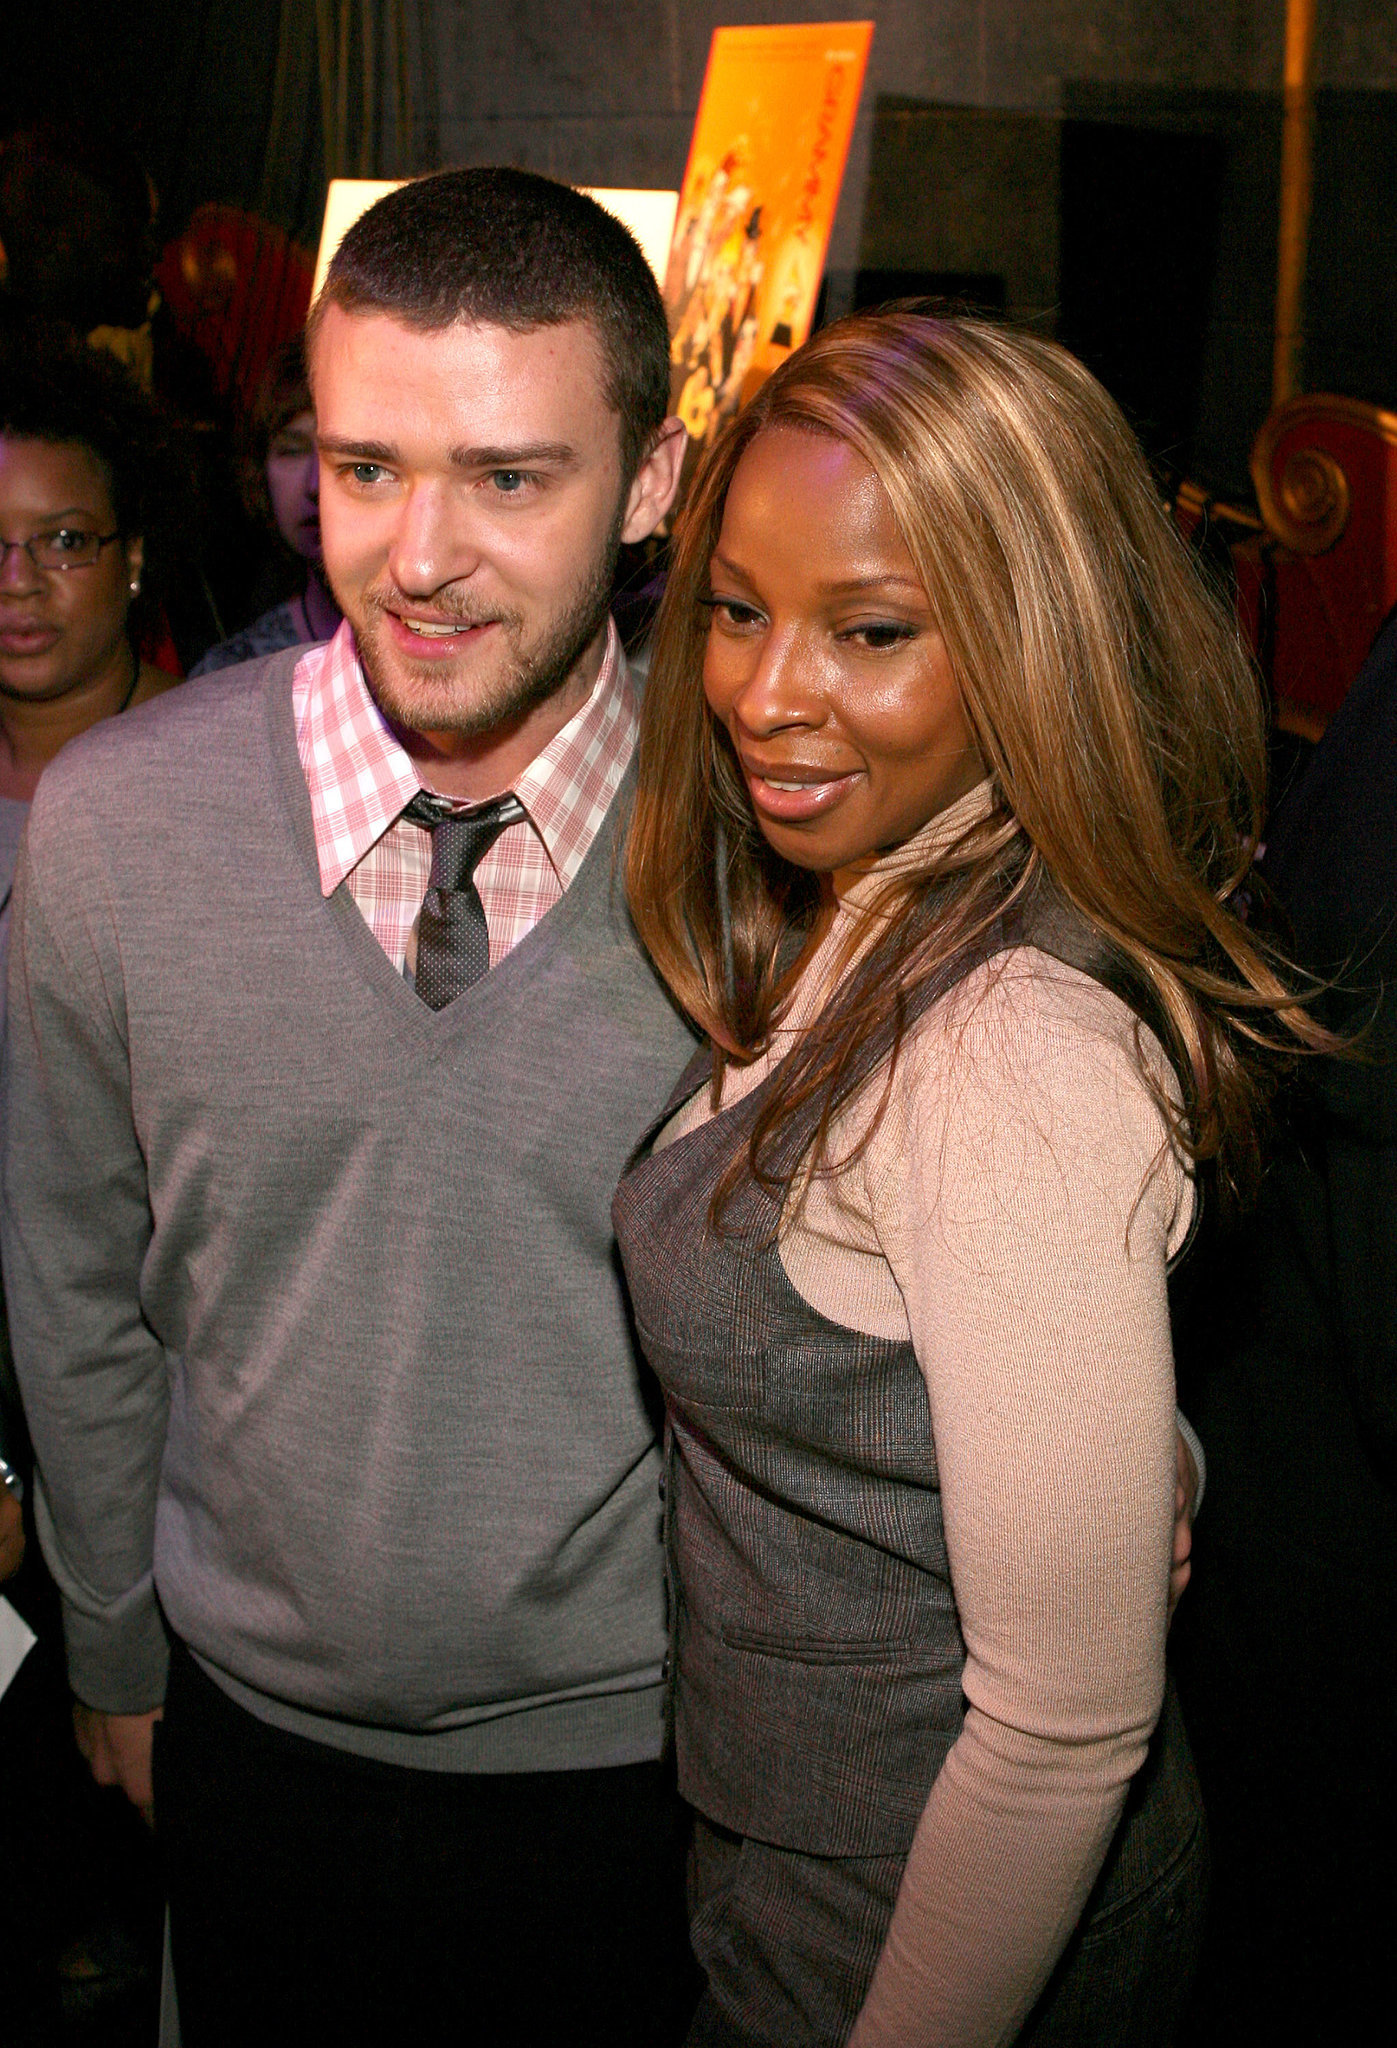 Justin and Mary J. Blige practically matched outfits at the Grammy Awards nominations in 2008.